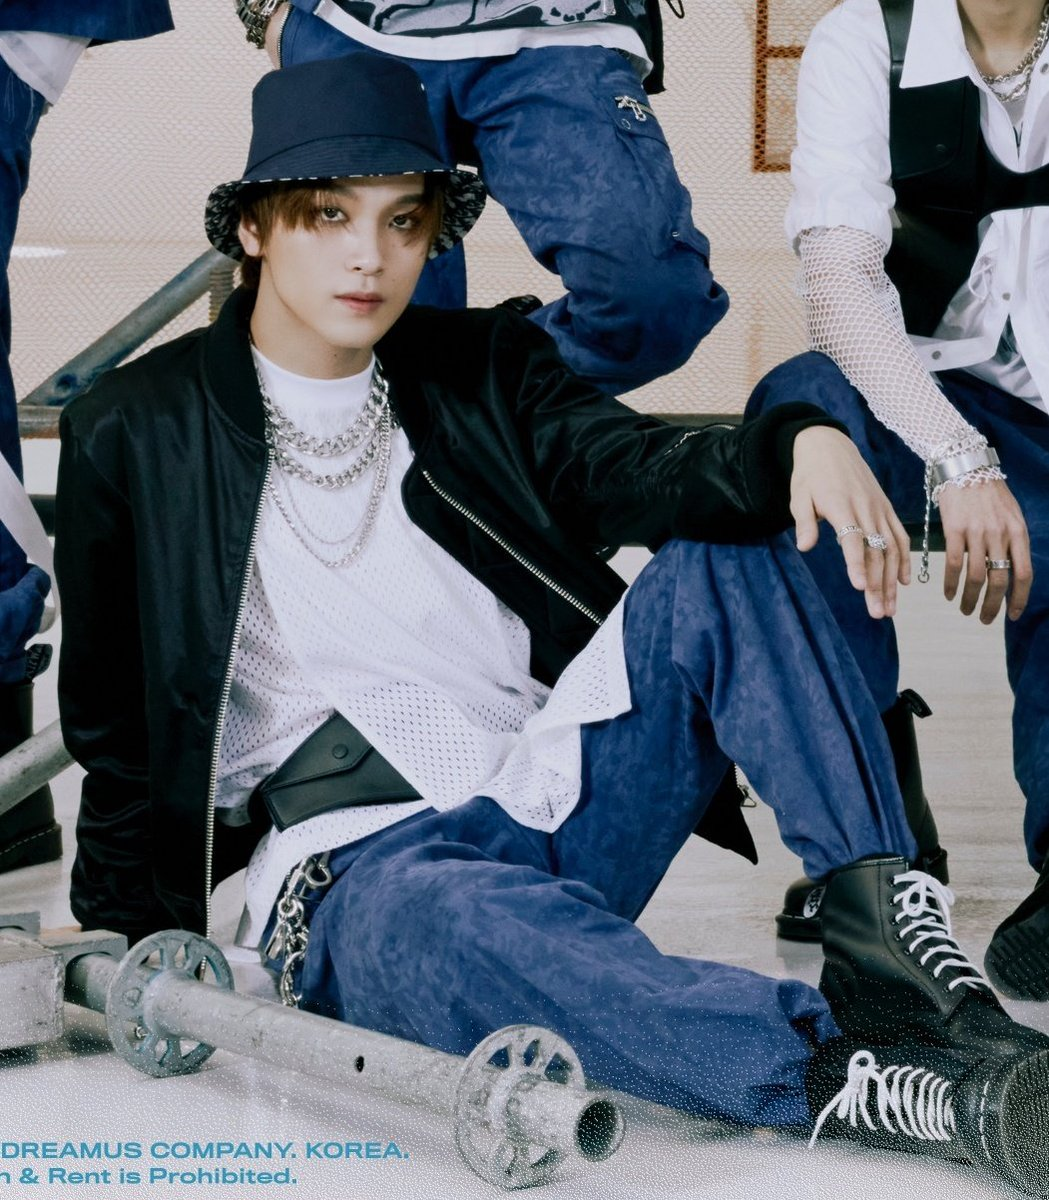 Daily Haechan Pics Rest On Twitter Bucket Hat Haechan Always Wins Nctdream Ridin Nctdream Nctdream Reload Reloadwithnctdream